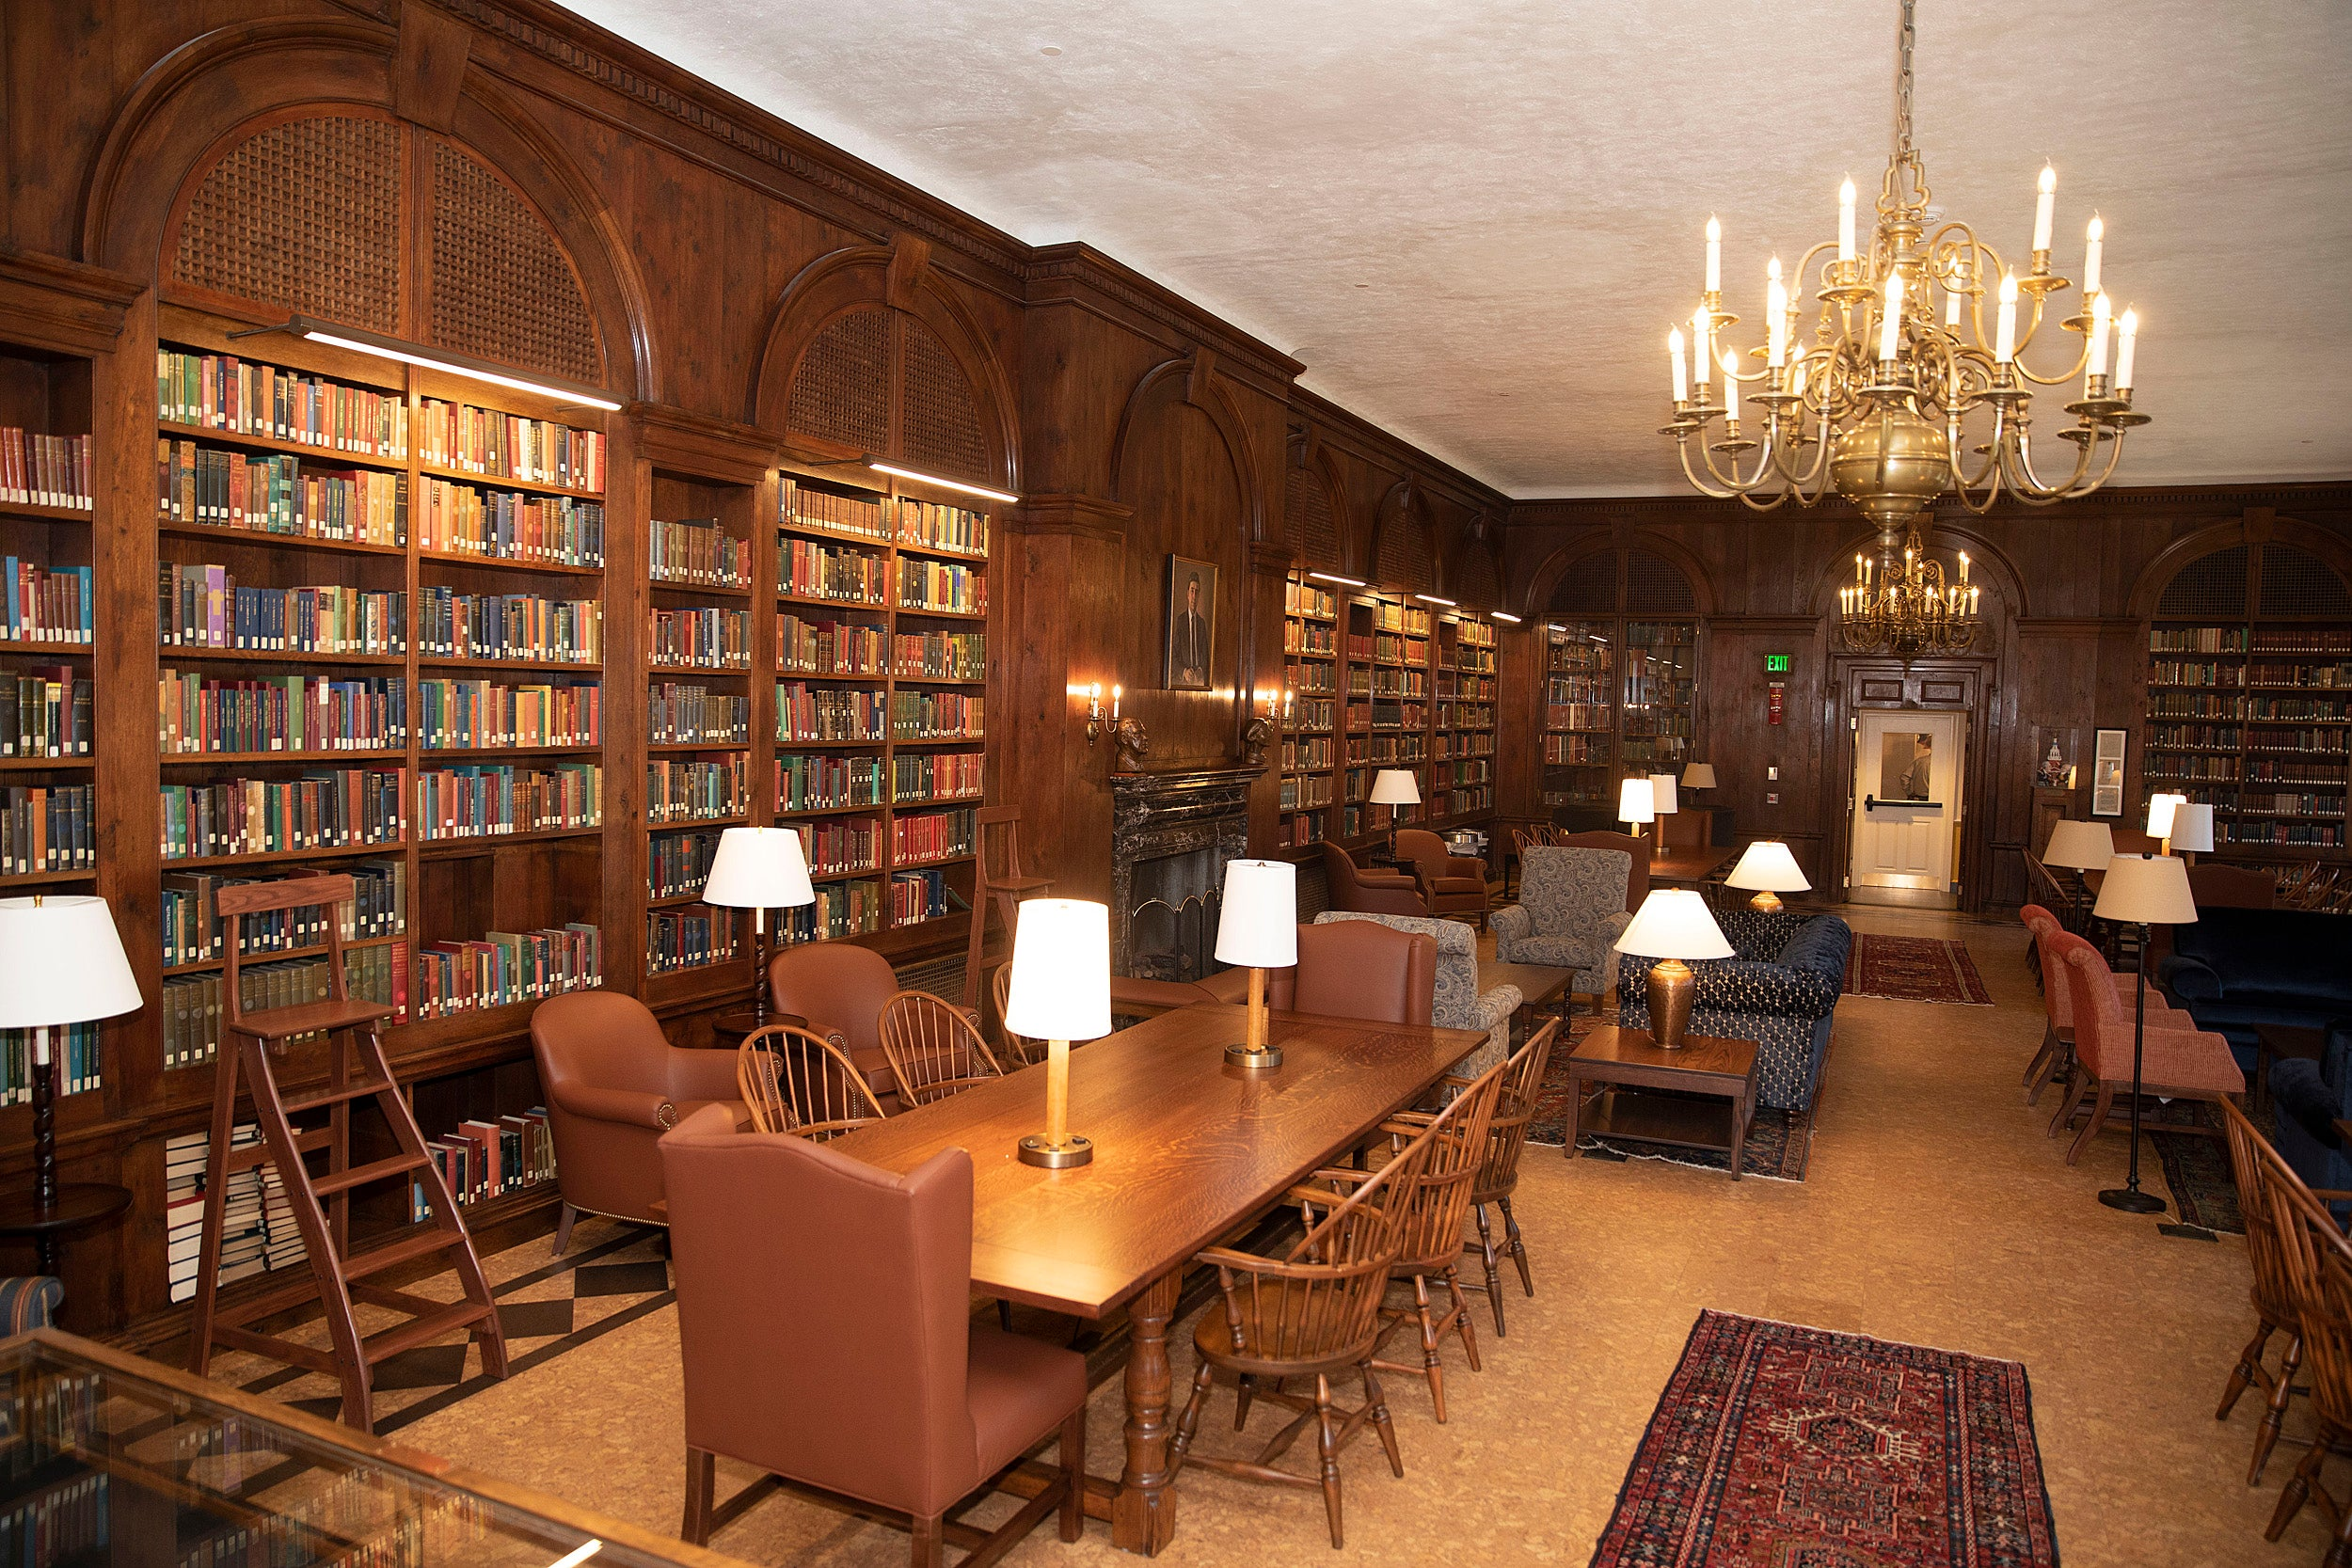 Lowell House's library